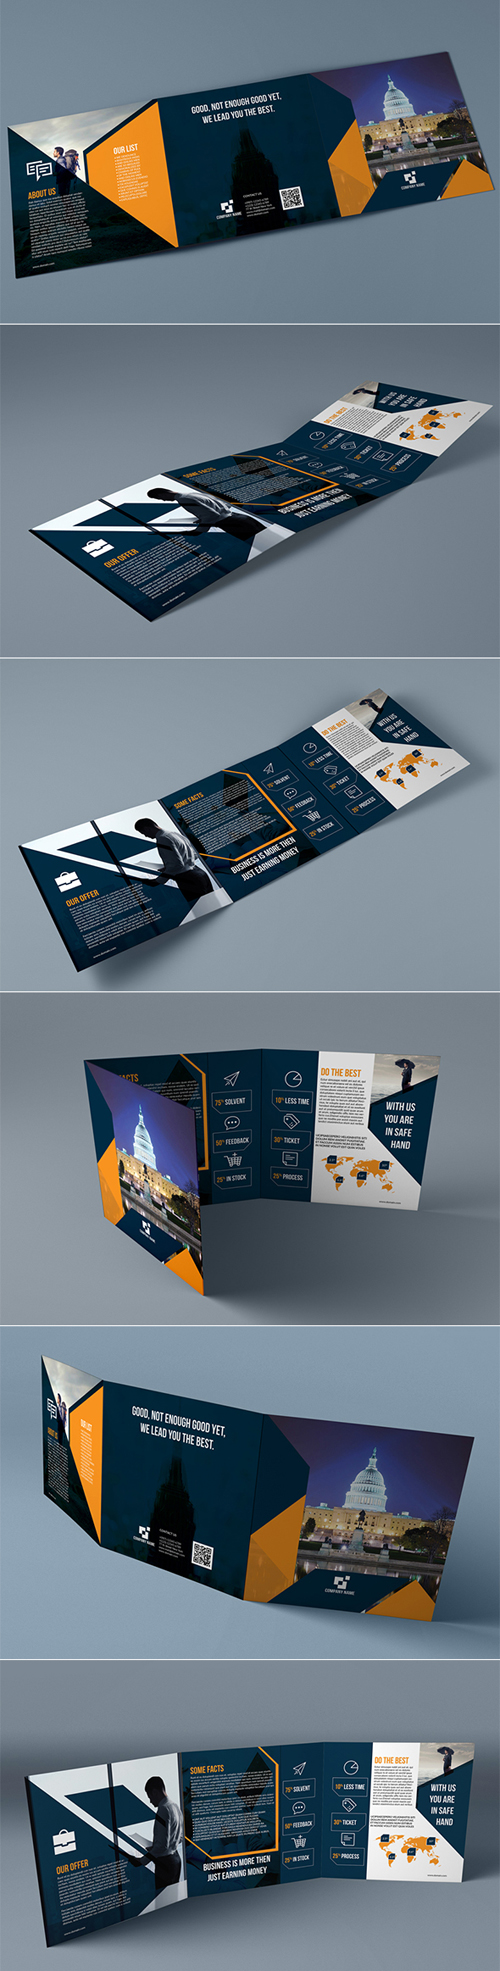 Ultimate Square Trifold Brochure Design